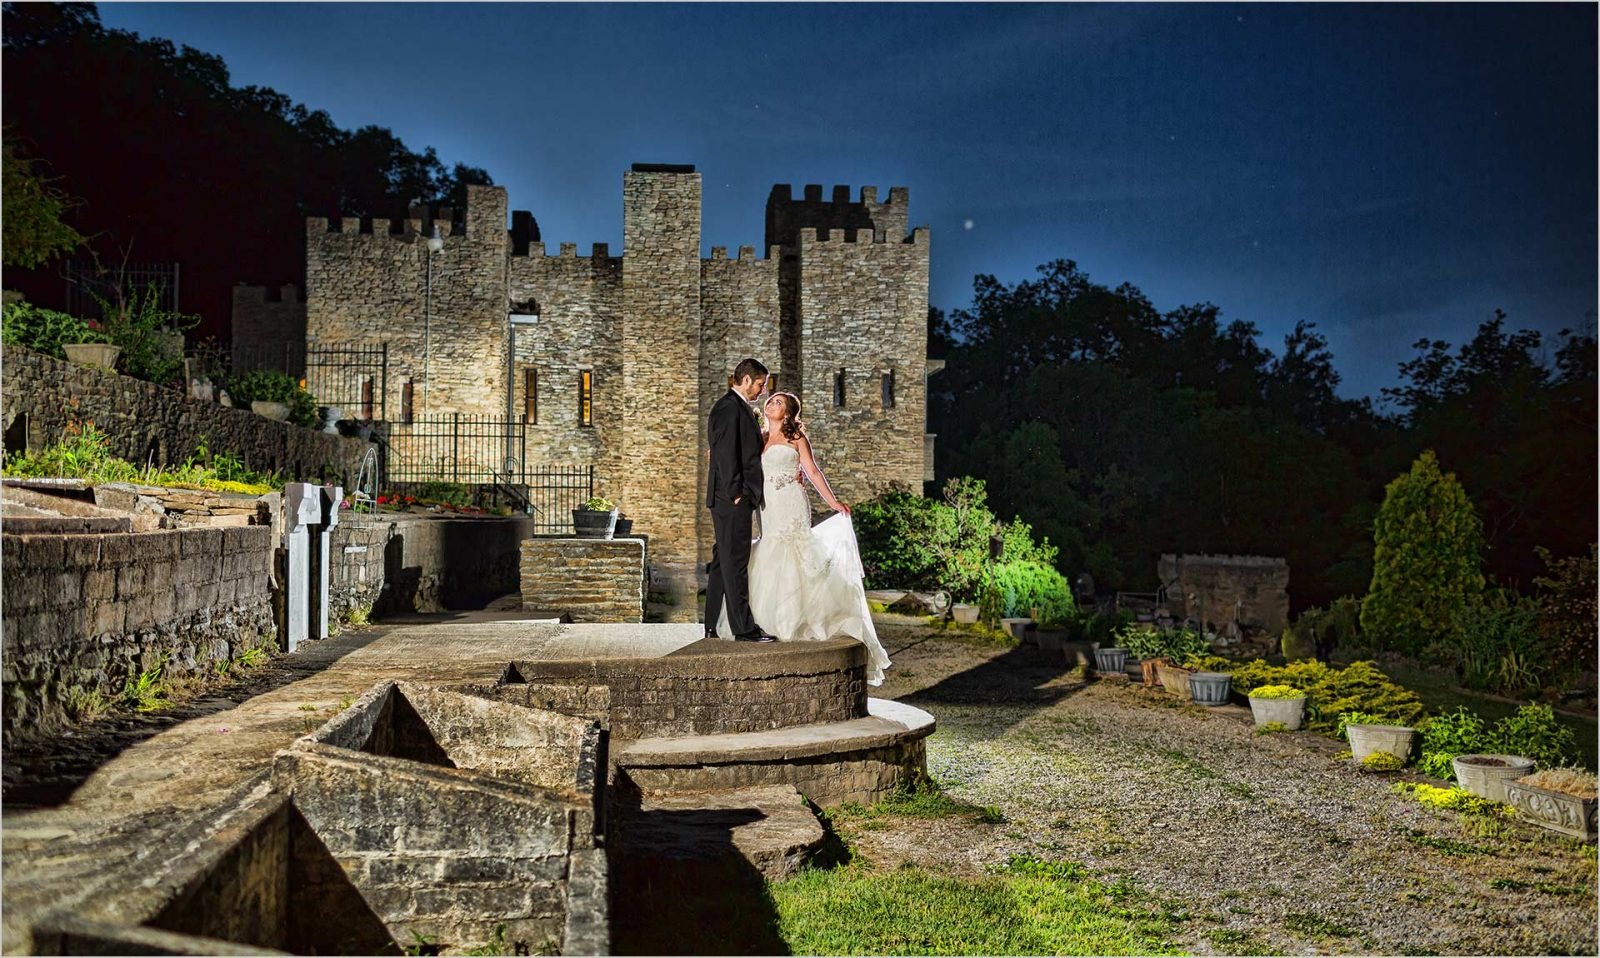 Loveland Castle Cincinnati Wedding sunset bride Groom